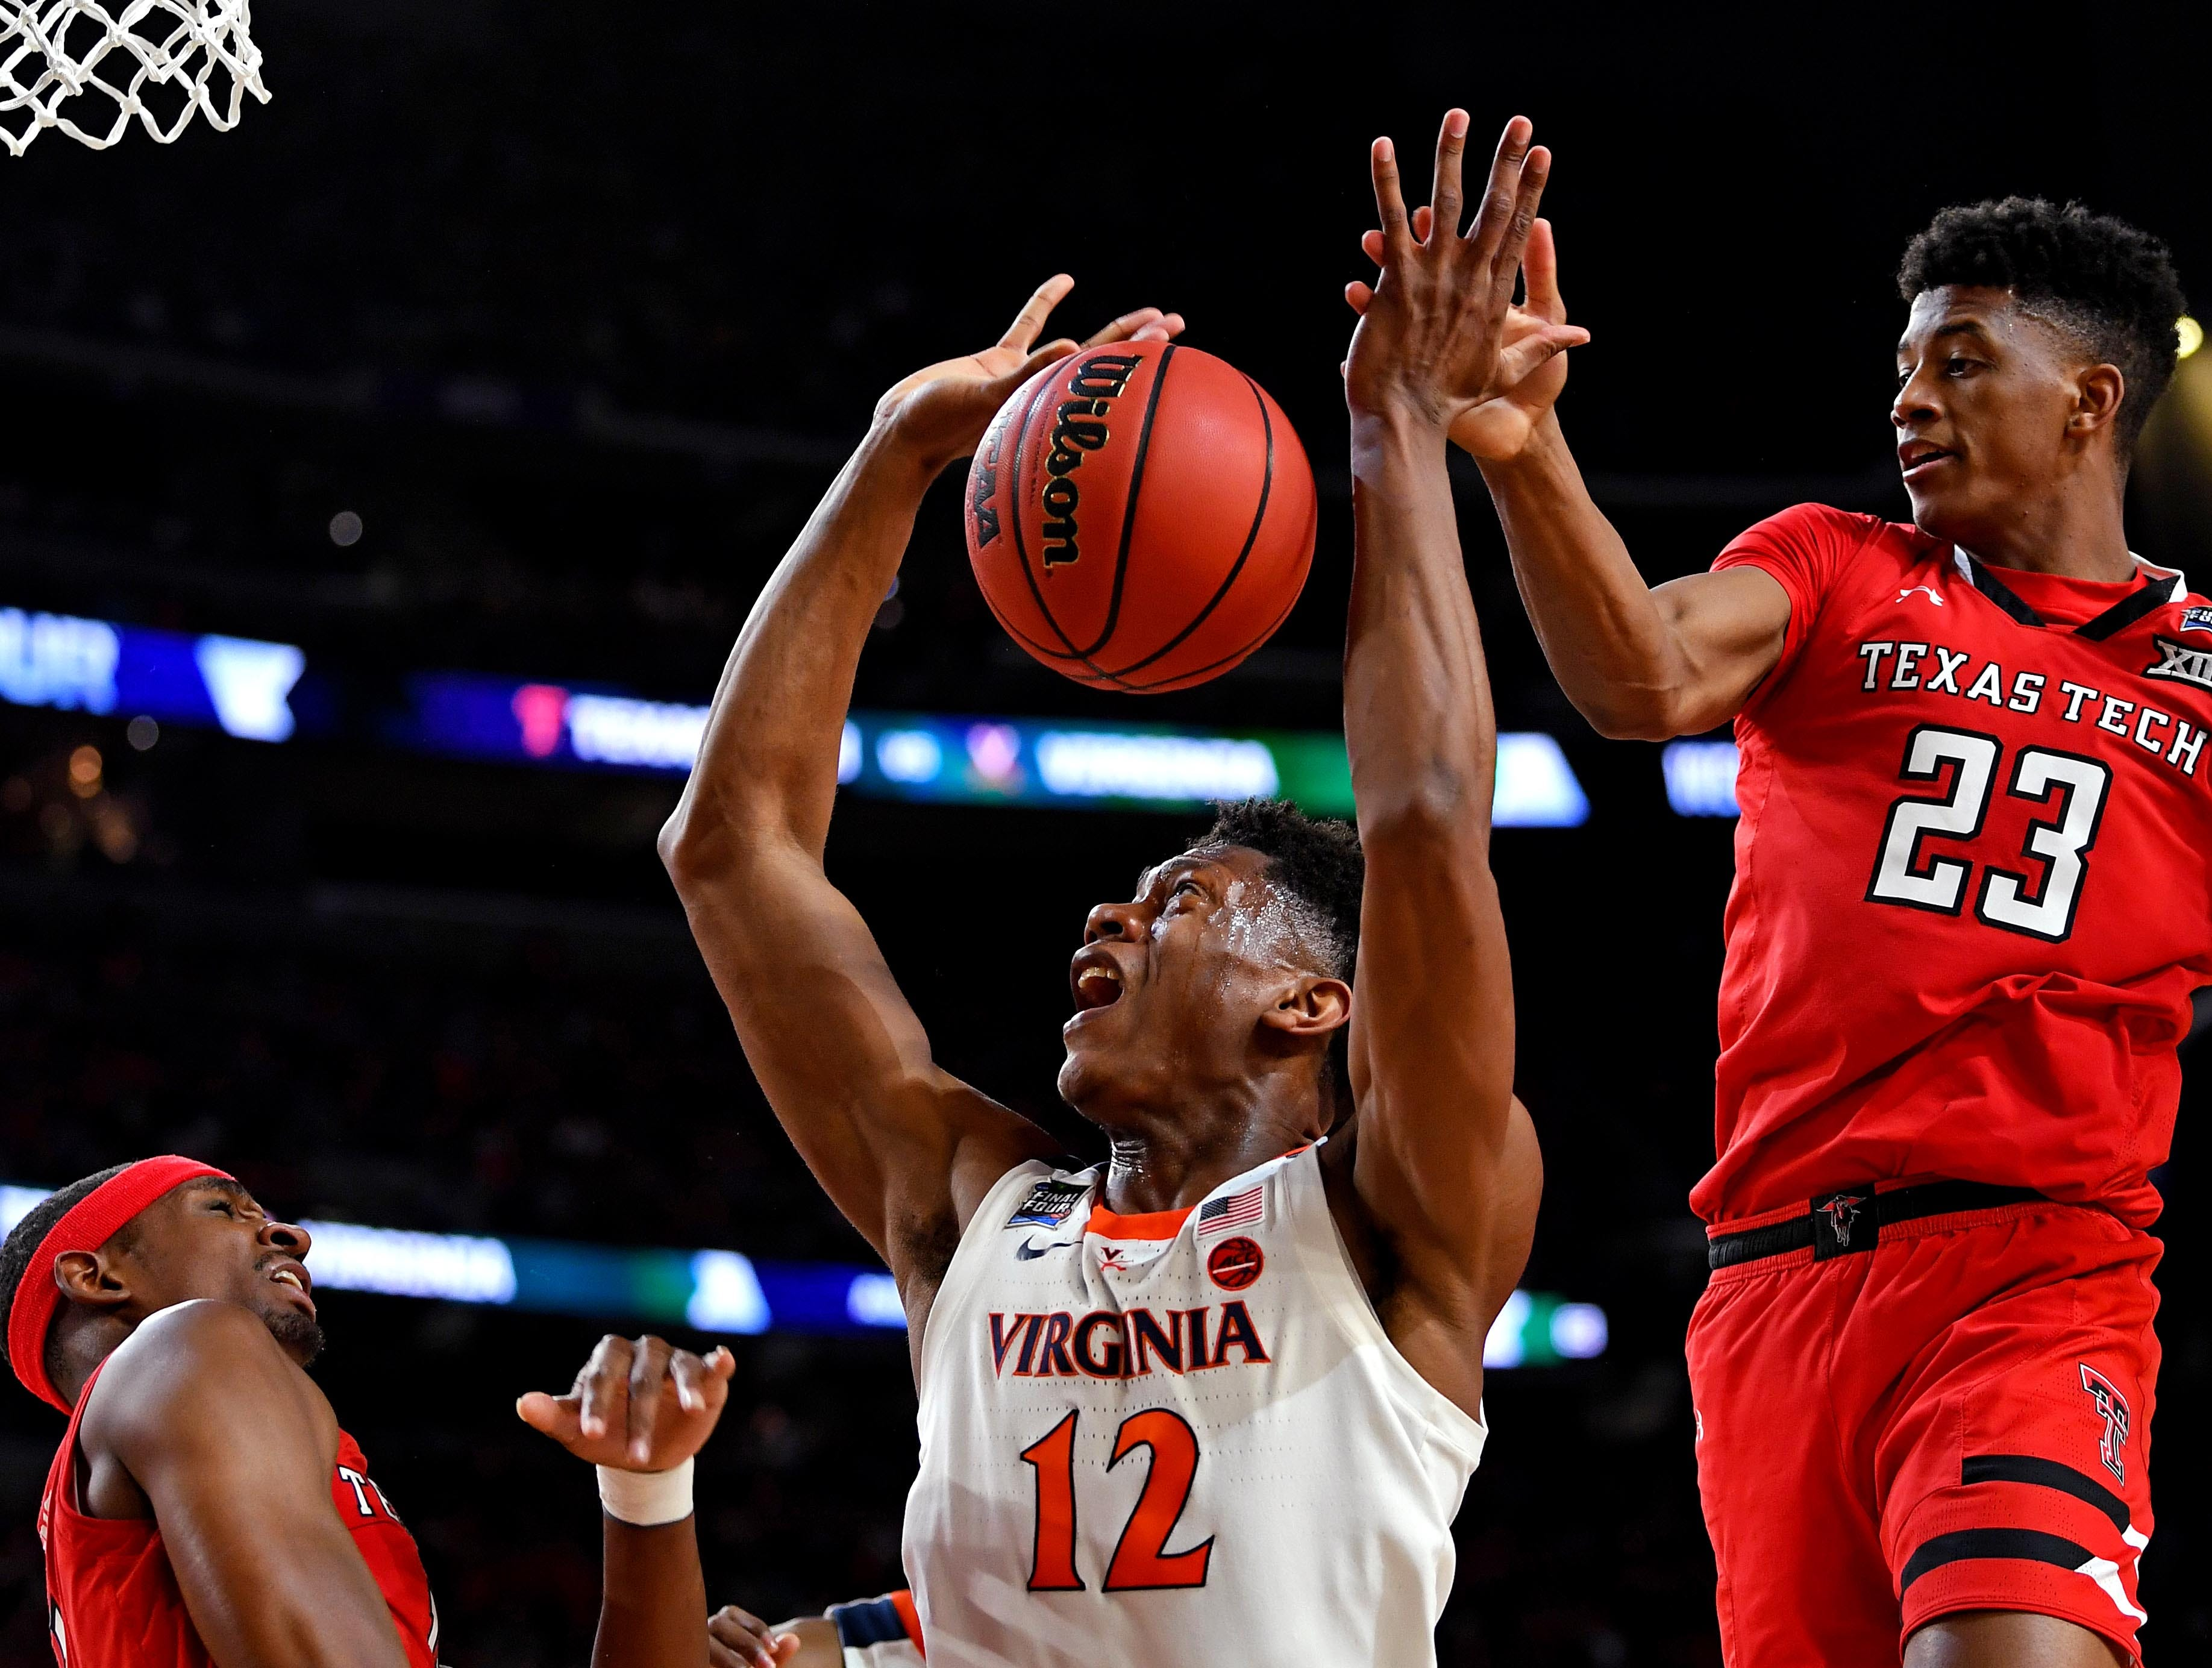 Apr 8, 2019; Minneapolis, MN, USA; Texas Tech Red Raiders guard Jarrett Culver (23) blocks a shot  by Virginia Cavaliers guard De'Andre Hunter (12) during the first halfin the championship game of the 2019 men's Final Four at US Bank Stadium. Mandatory Credit: Bob Donnan-USA TODAY Sports